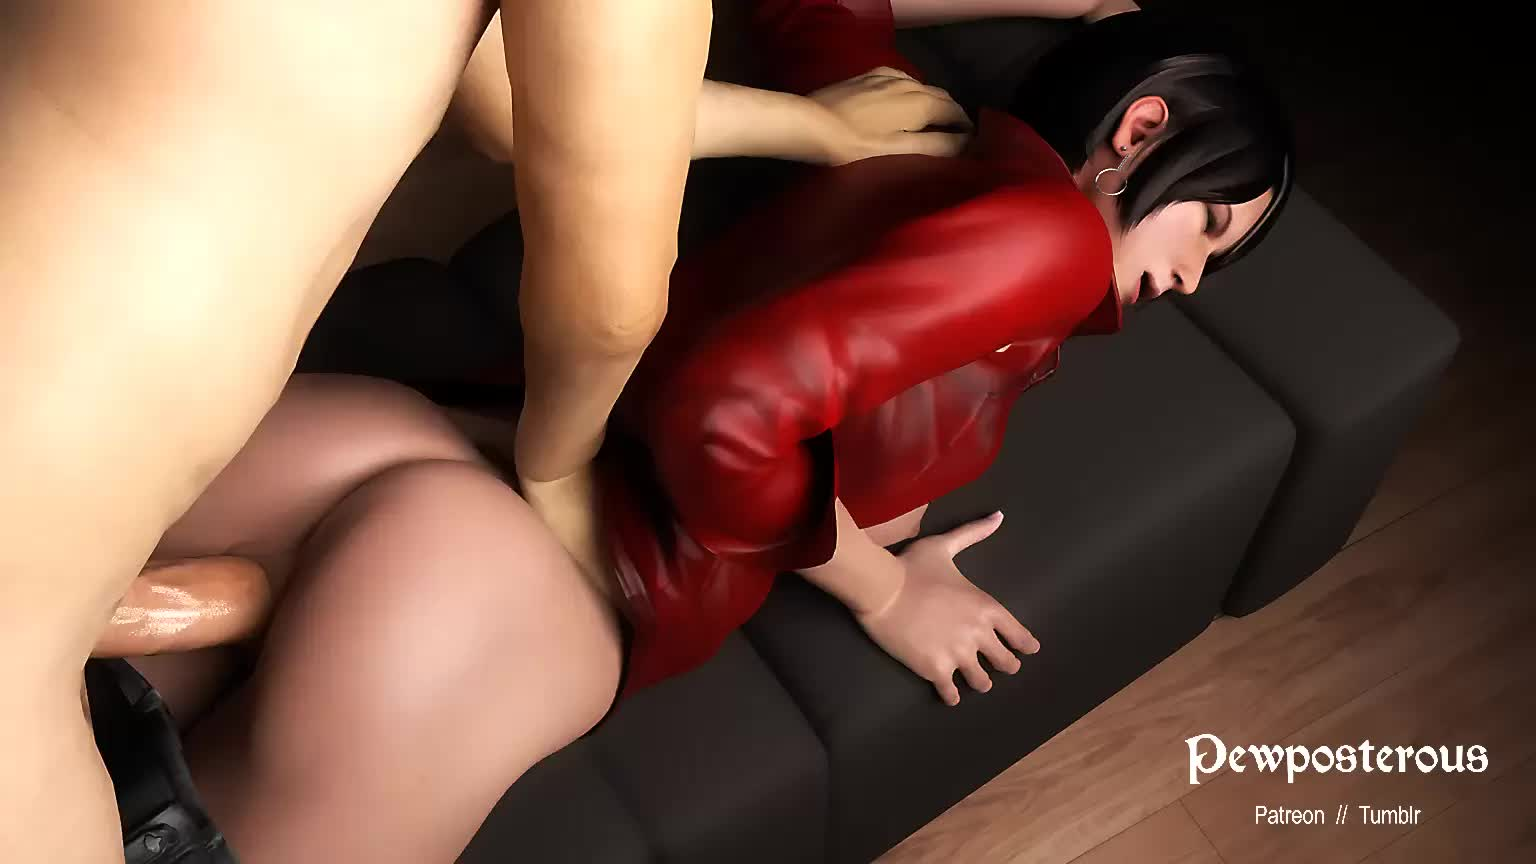 3D Ada_Wong Animated Blender Pewposterous Resident_Evil // 1536x864 // 514.8KB // webm